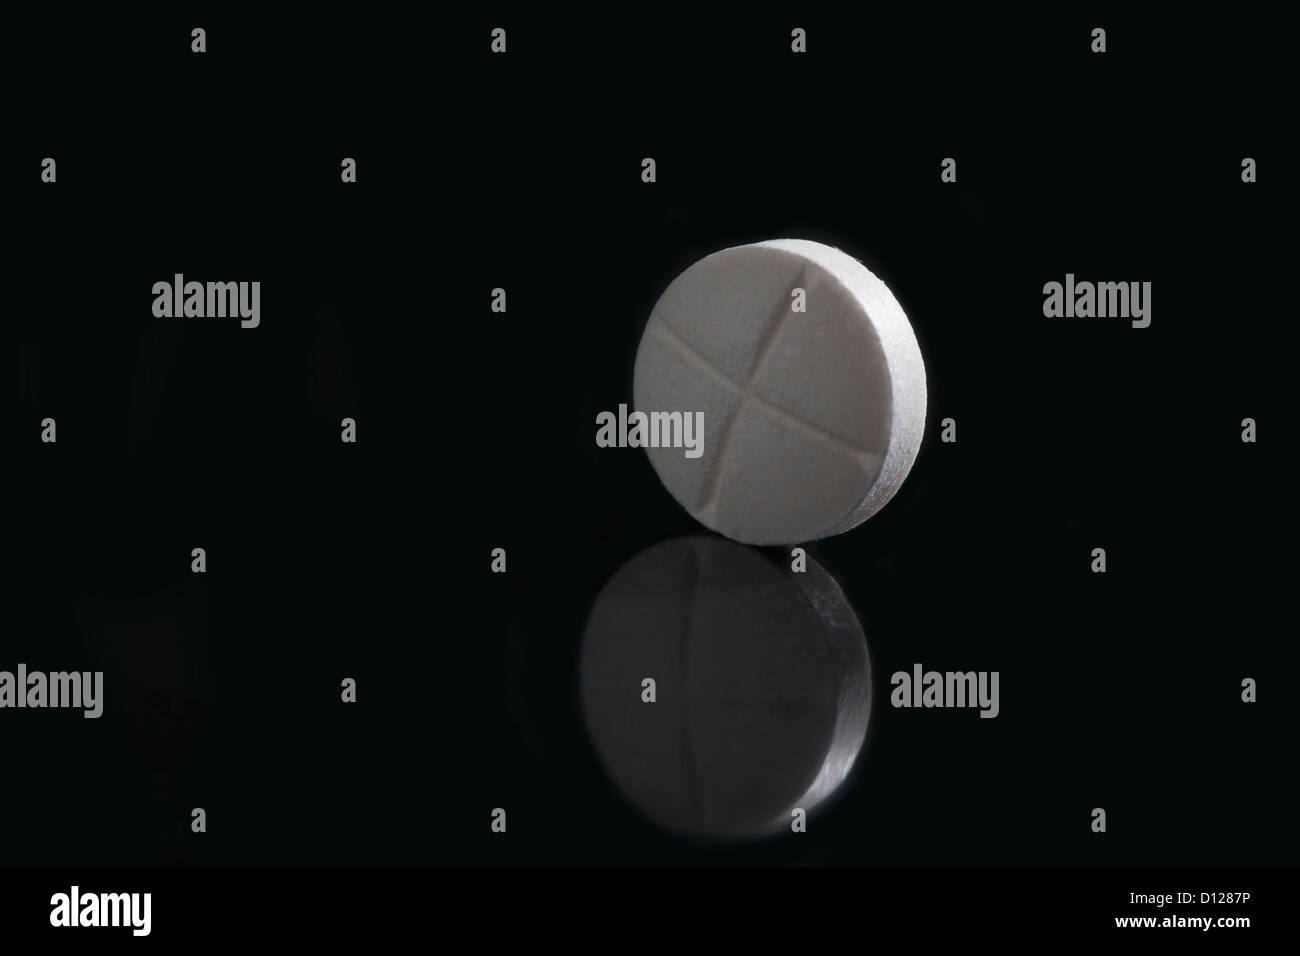 Close Up Of A Single White Pill With Cross Marks Backlit On A Black Reflective Surface; Calgary Alberta Canada Stock Photo